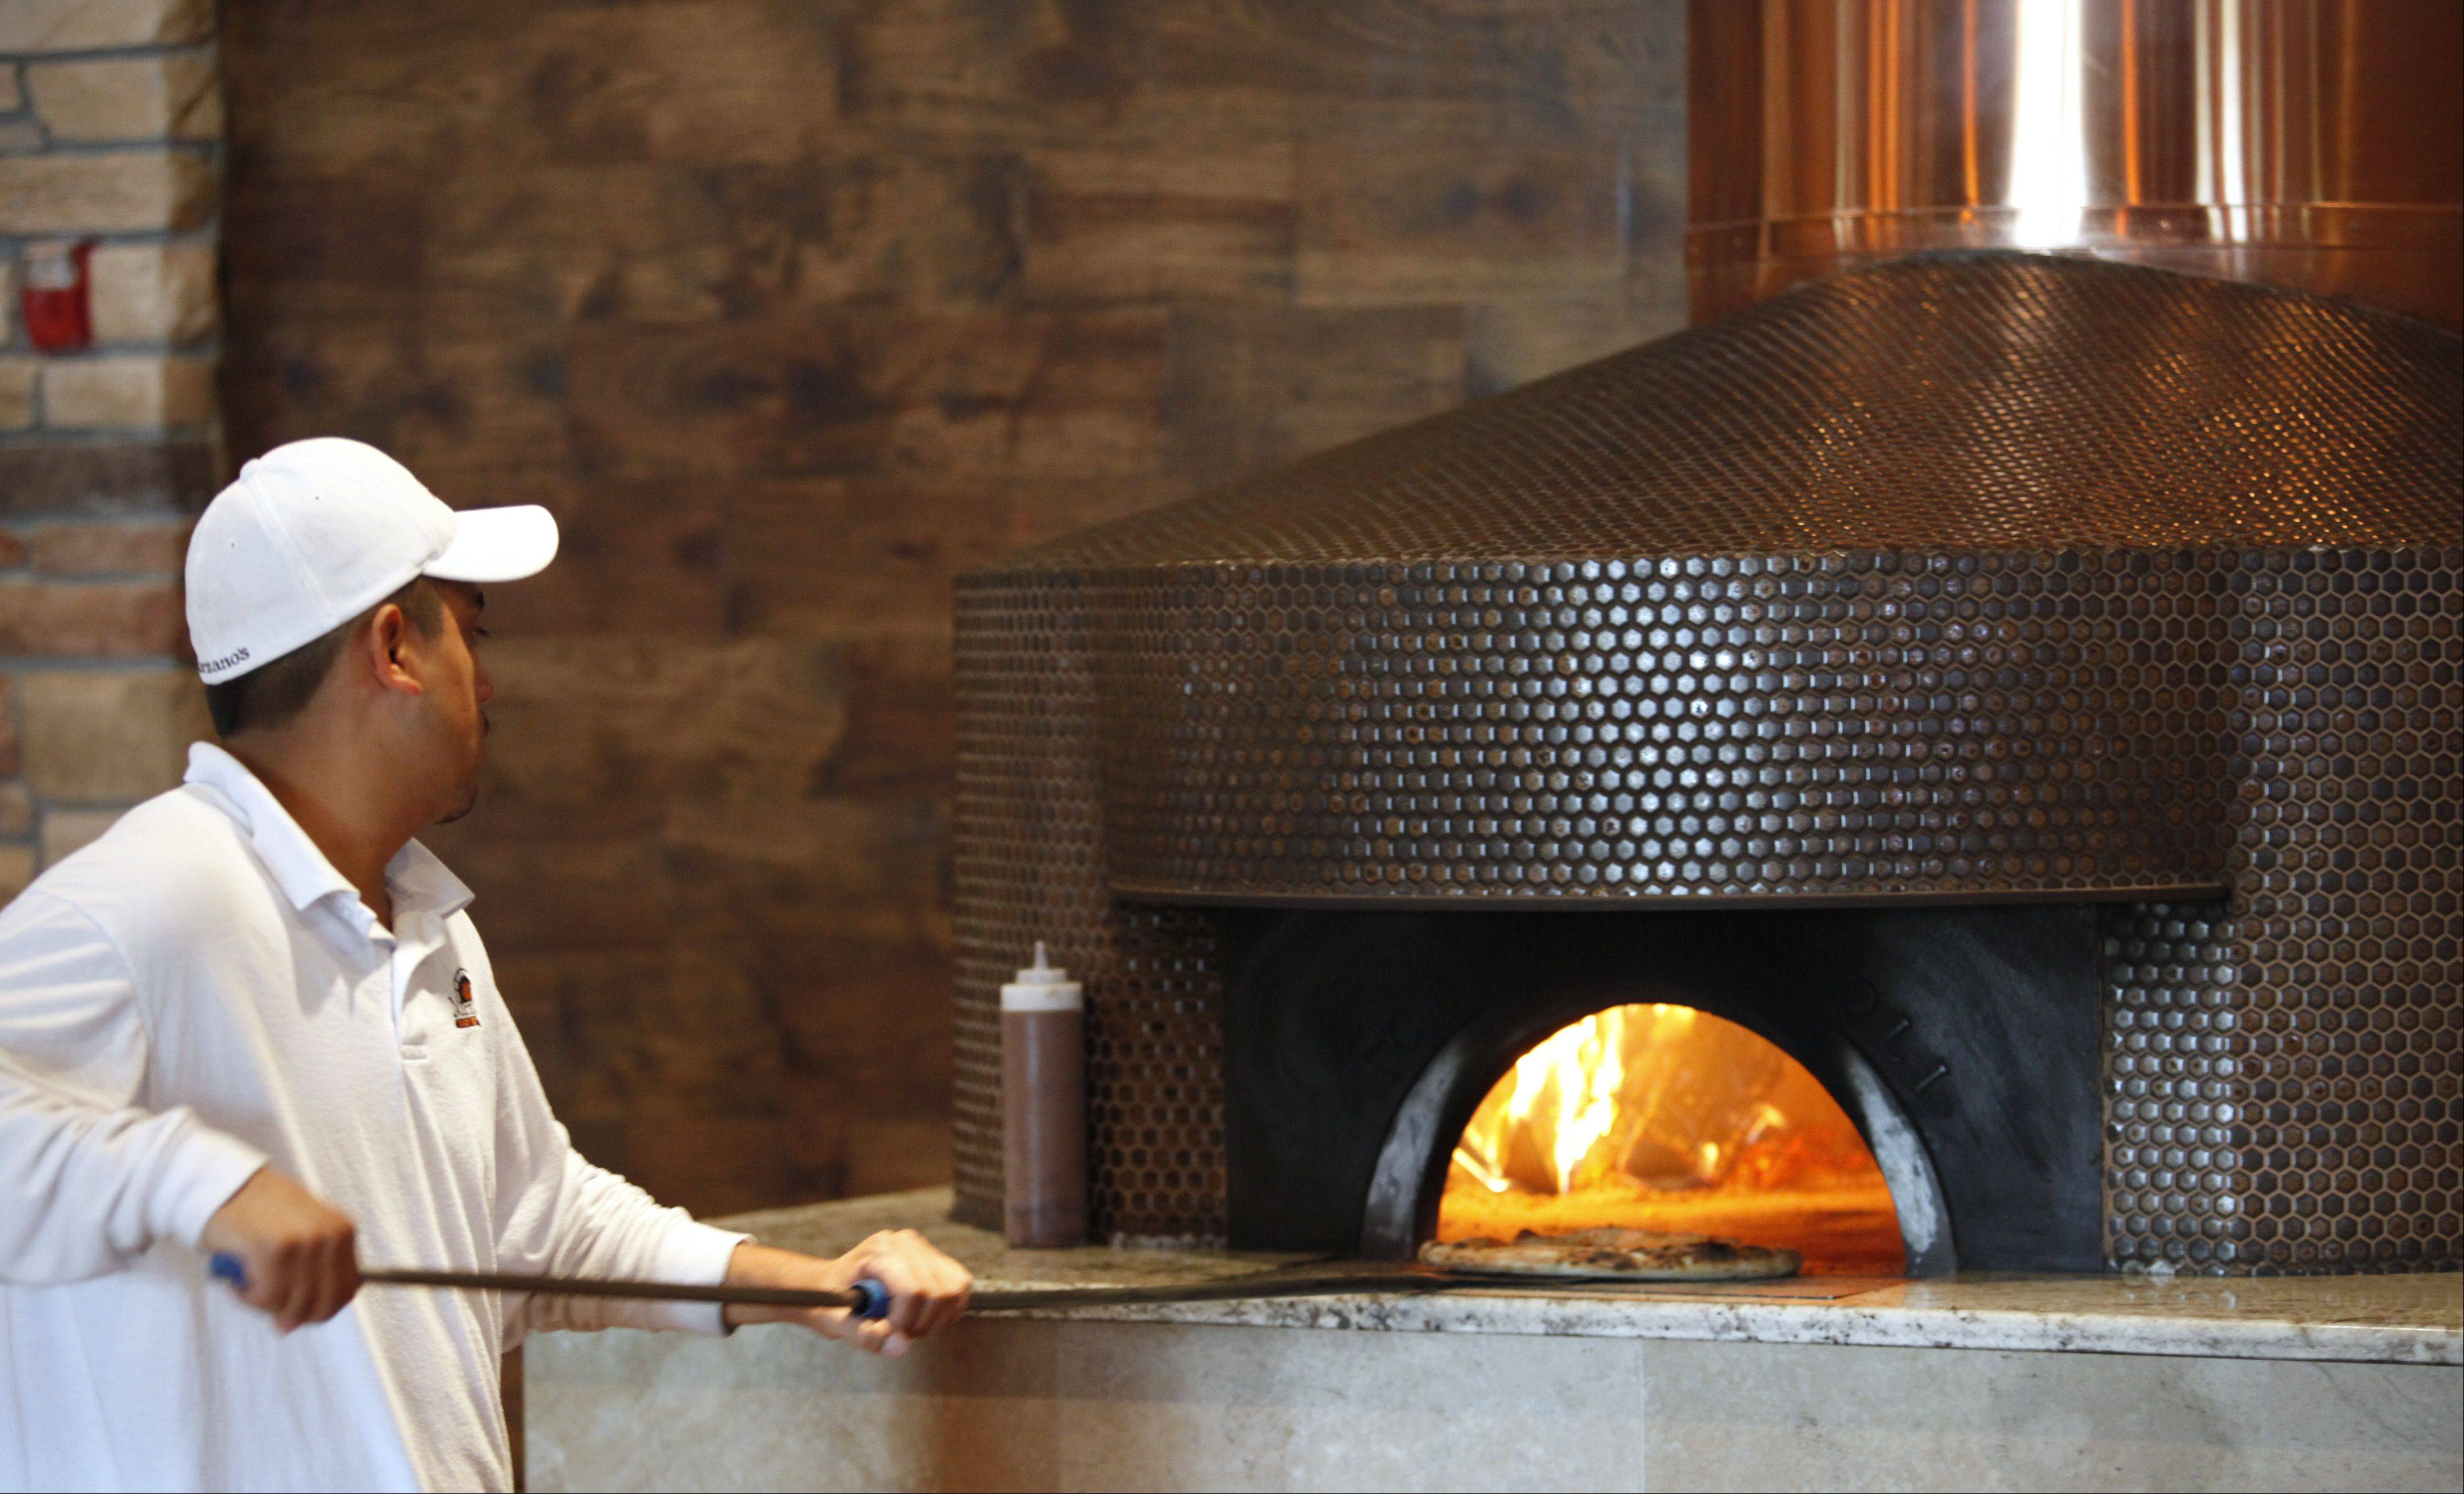 A pizza heads into the wood-fired oven at Marzano's Wood Fired Italian restaurant.